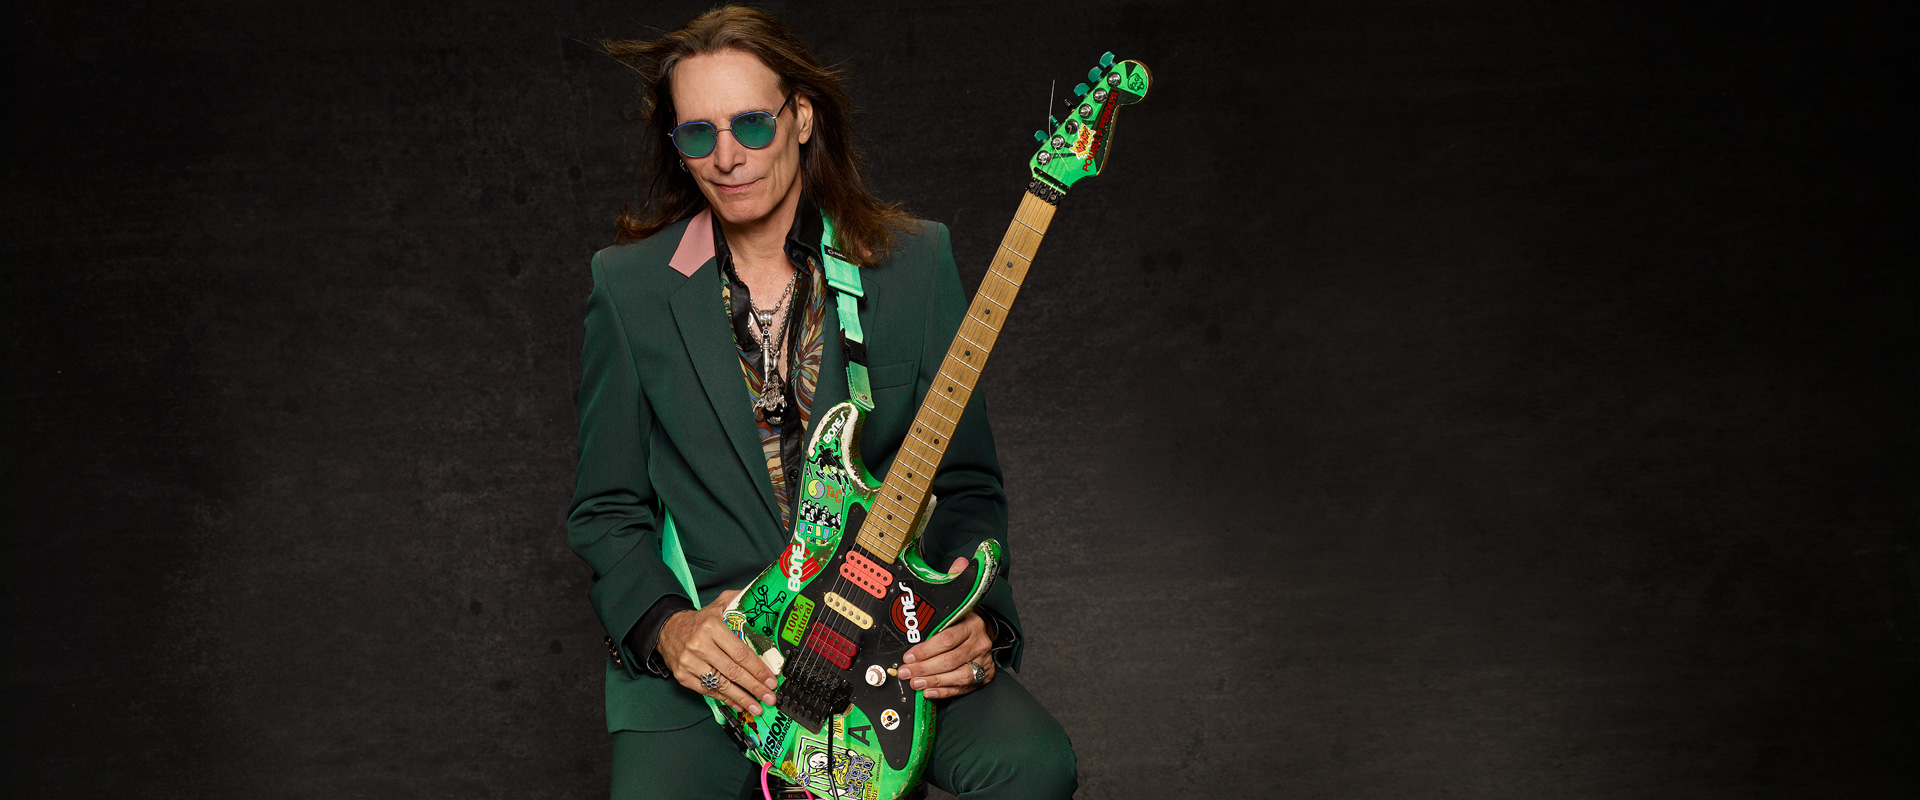 The birth of Steve Vai's Green Meanie